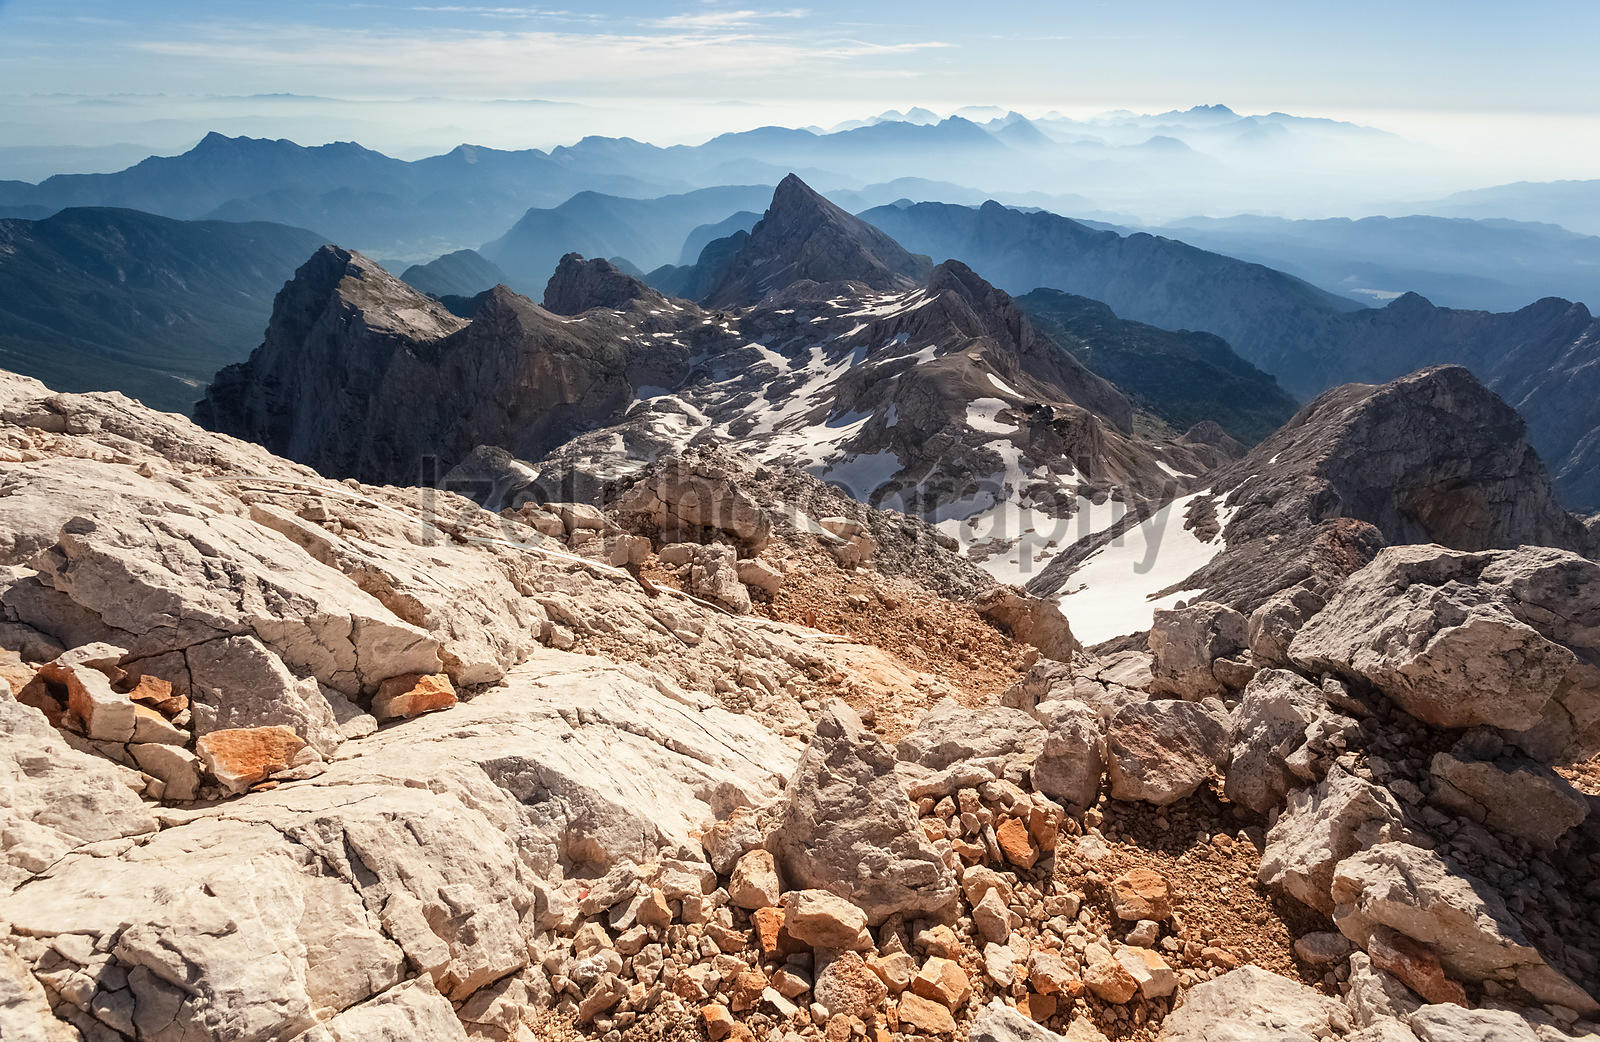 Looking down the ridge that leads to the summit of Triglav with the mountain hut in the distance.